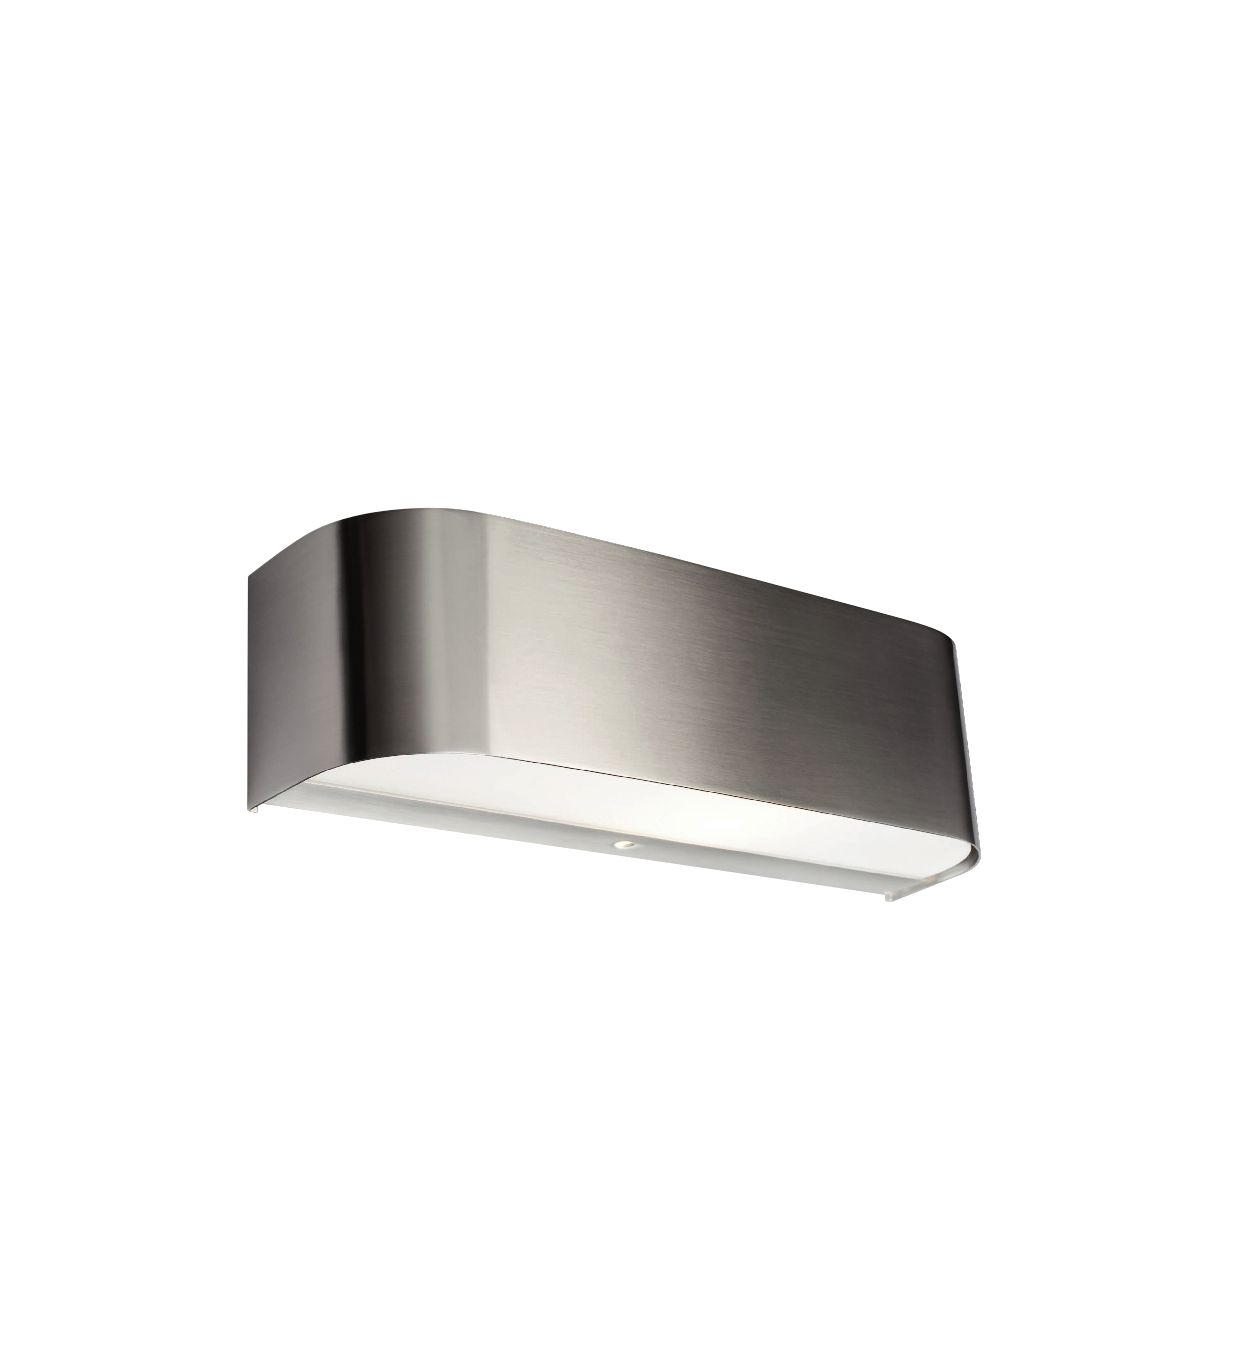 Wickes Jonah Uplighter Wall Light Wickes.co.uk